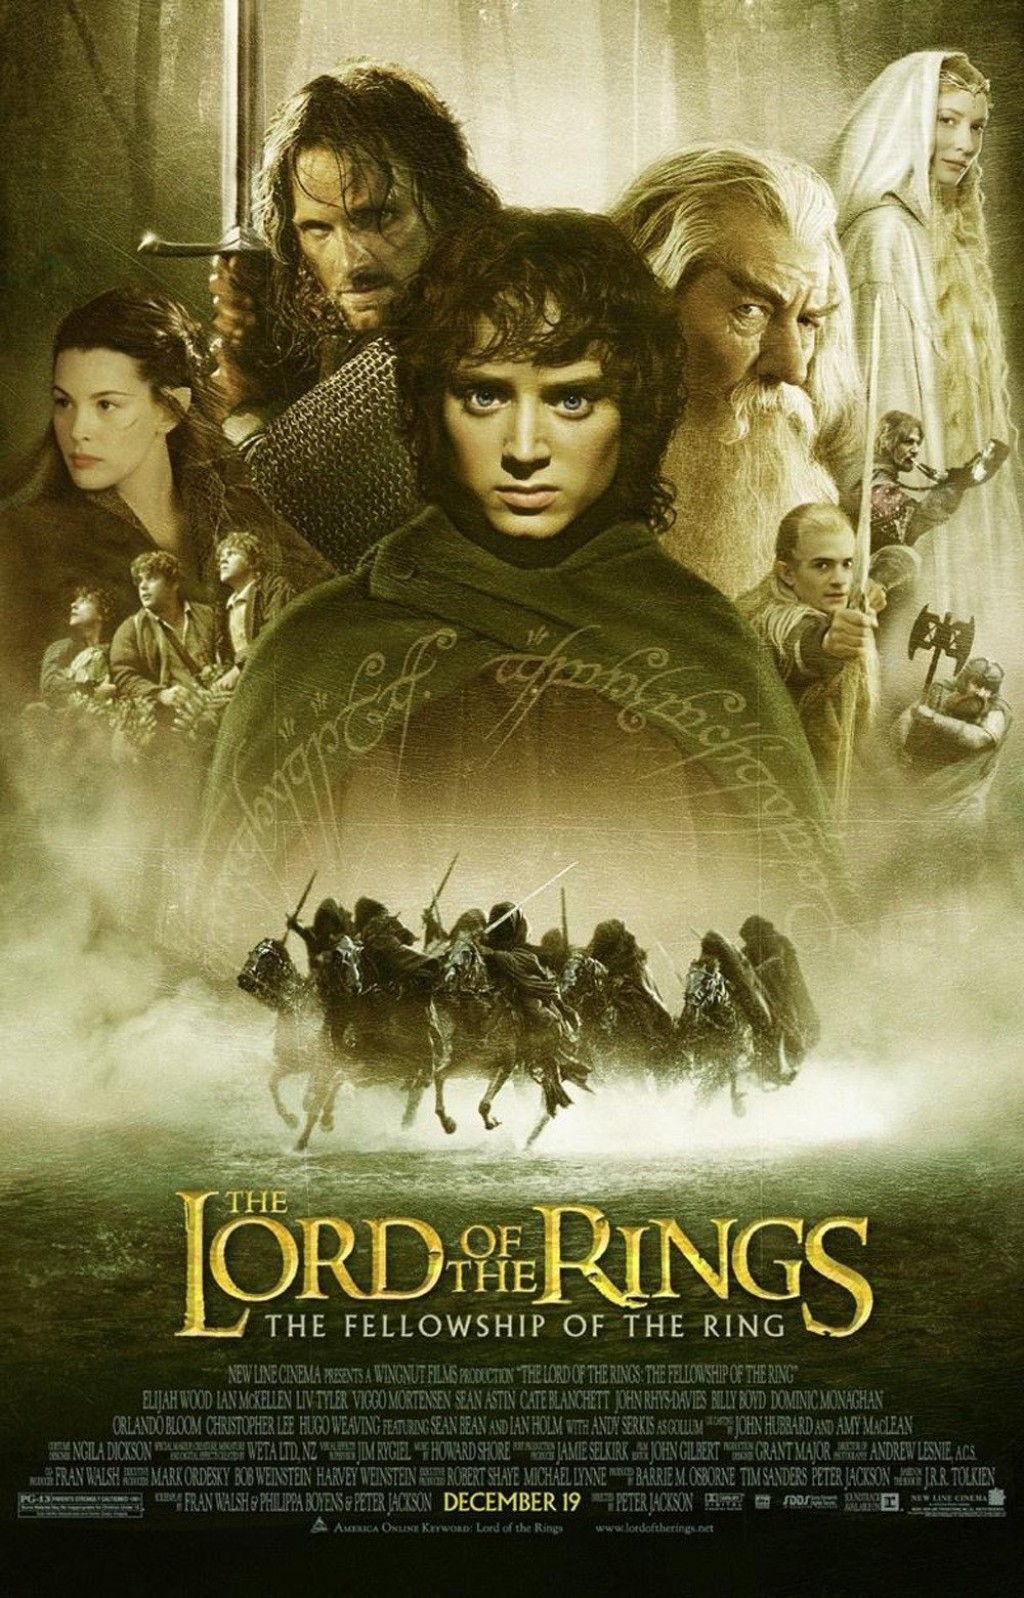 an evaluation of the movie adaptation of the lord of the rings fellowship of the ring Funny, scary and, totally involving, peter jackson's assured adaptation of jrr tolkien's the lord of the rings turns the book's least screen-worthy volume into a gripping and powerful adventure movie.